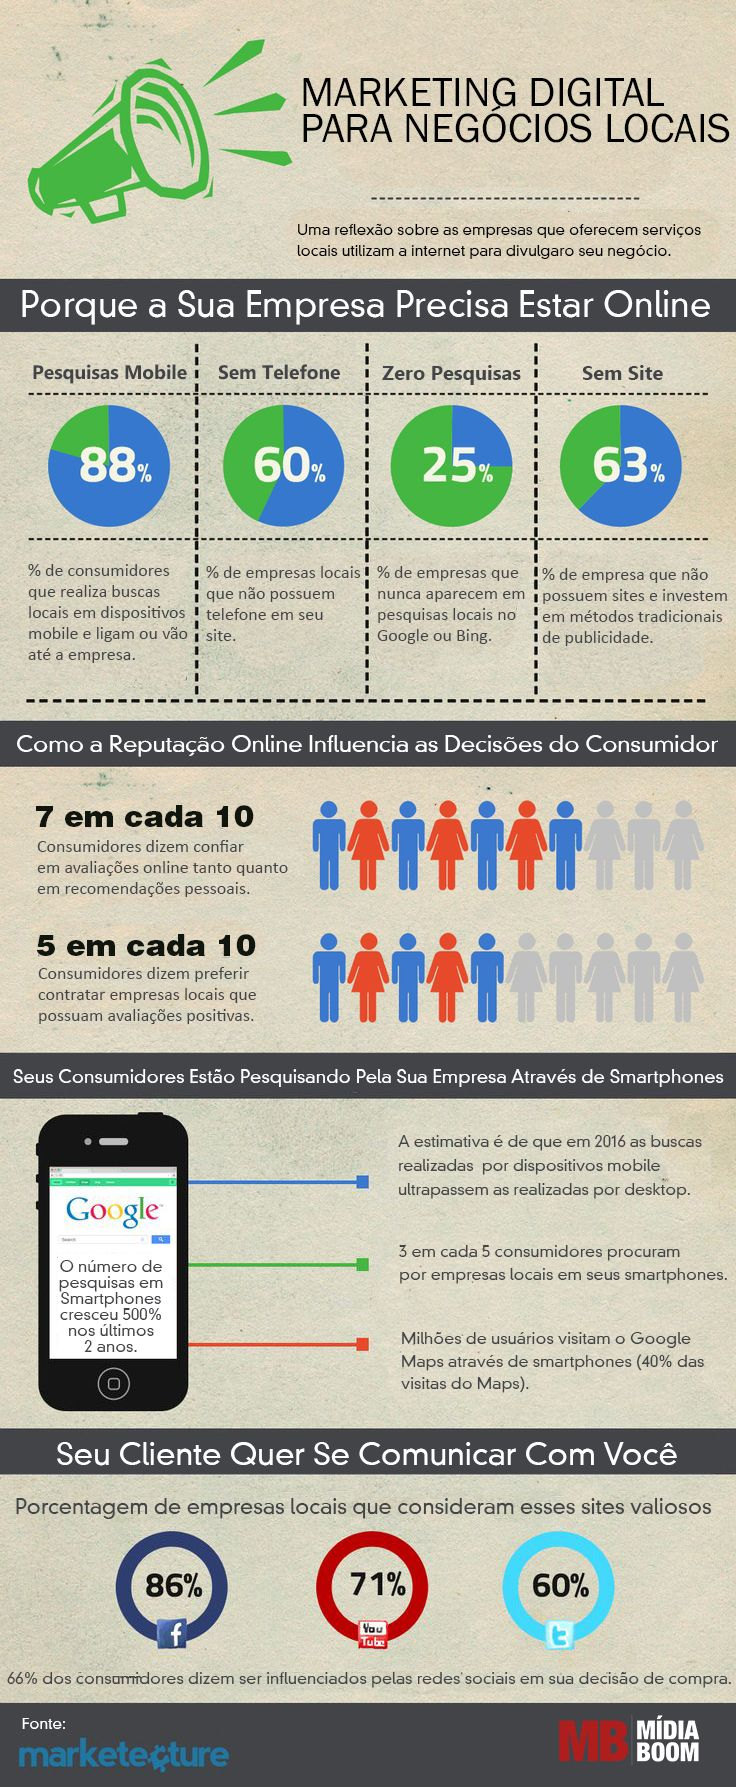 infografico-marketing-digital-para-buscas-locais